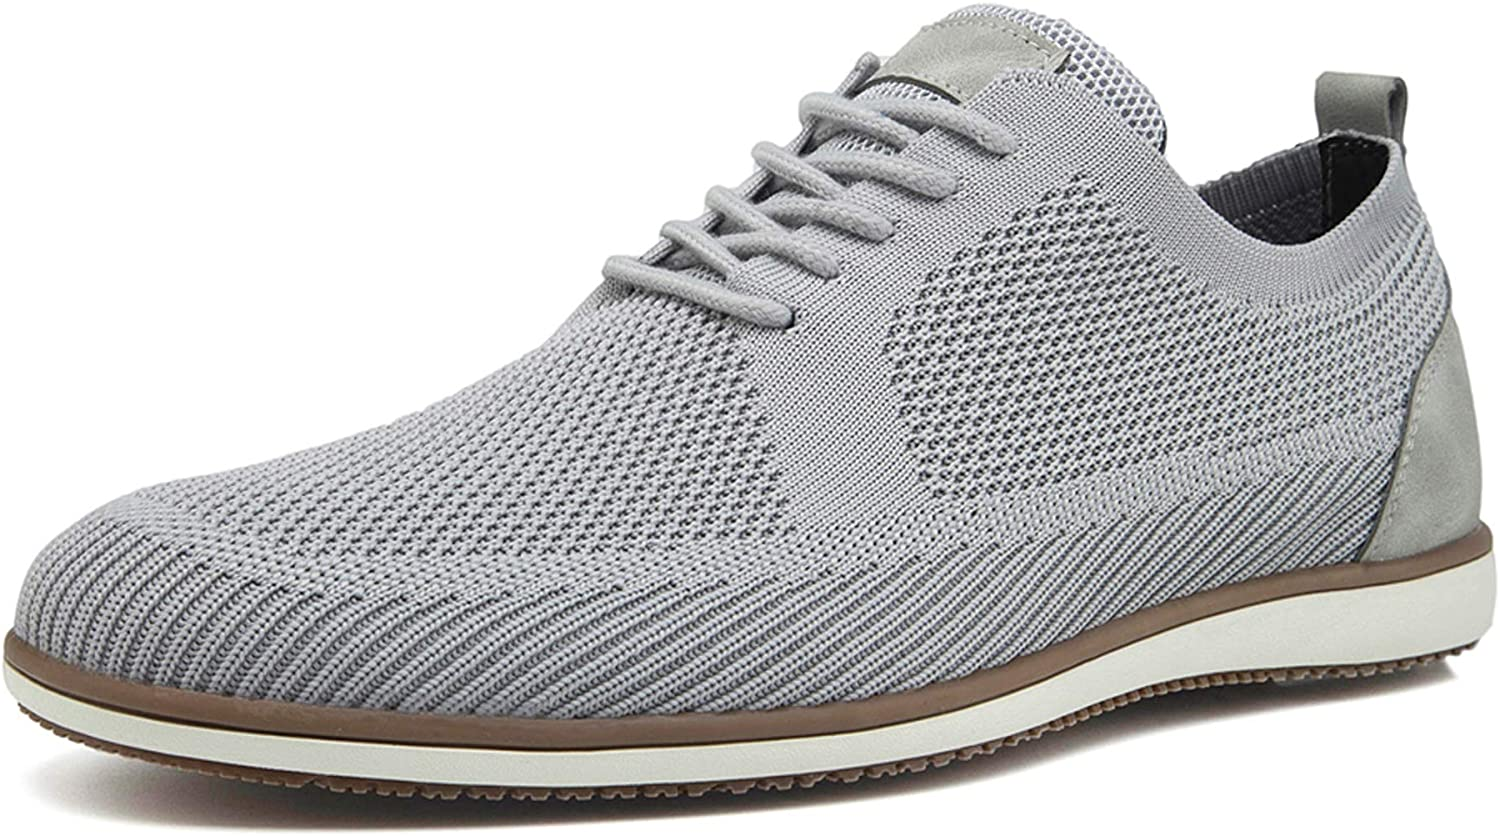 TongLing Mens British Fashion Oxfords Sparkling Rivet Slip on Casual Shoes Dress Shoes